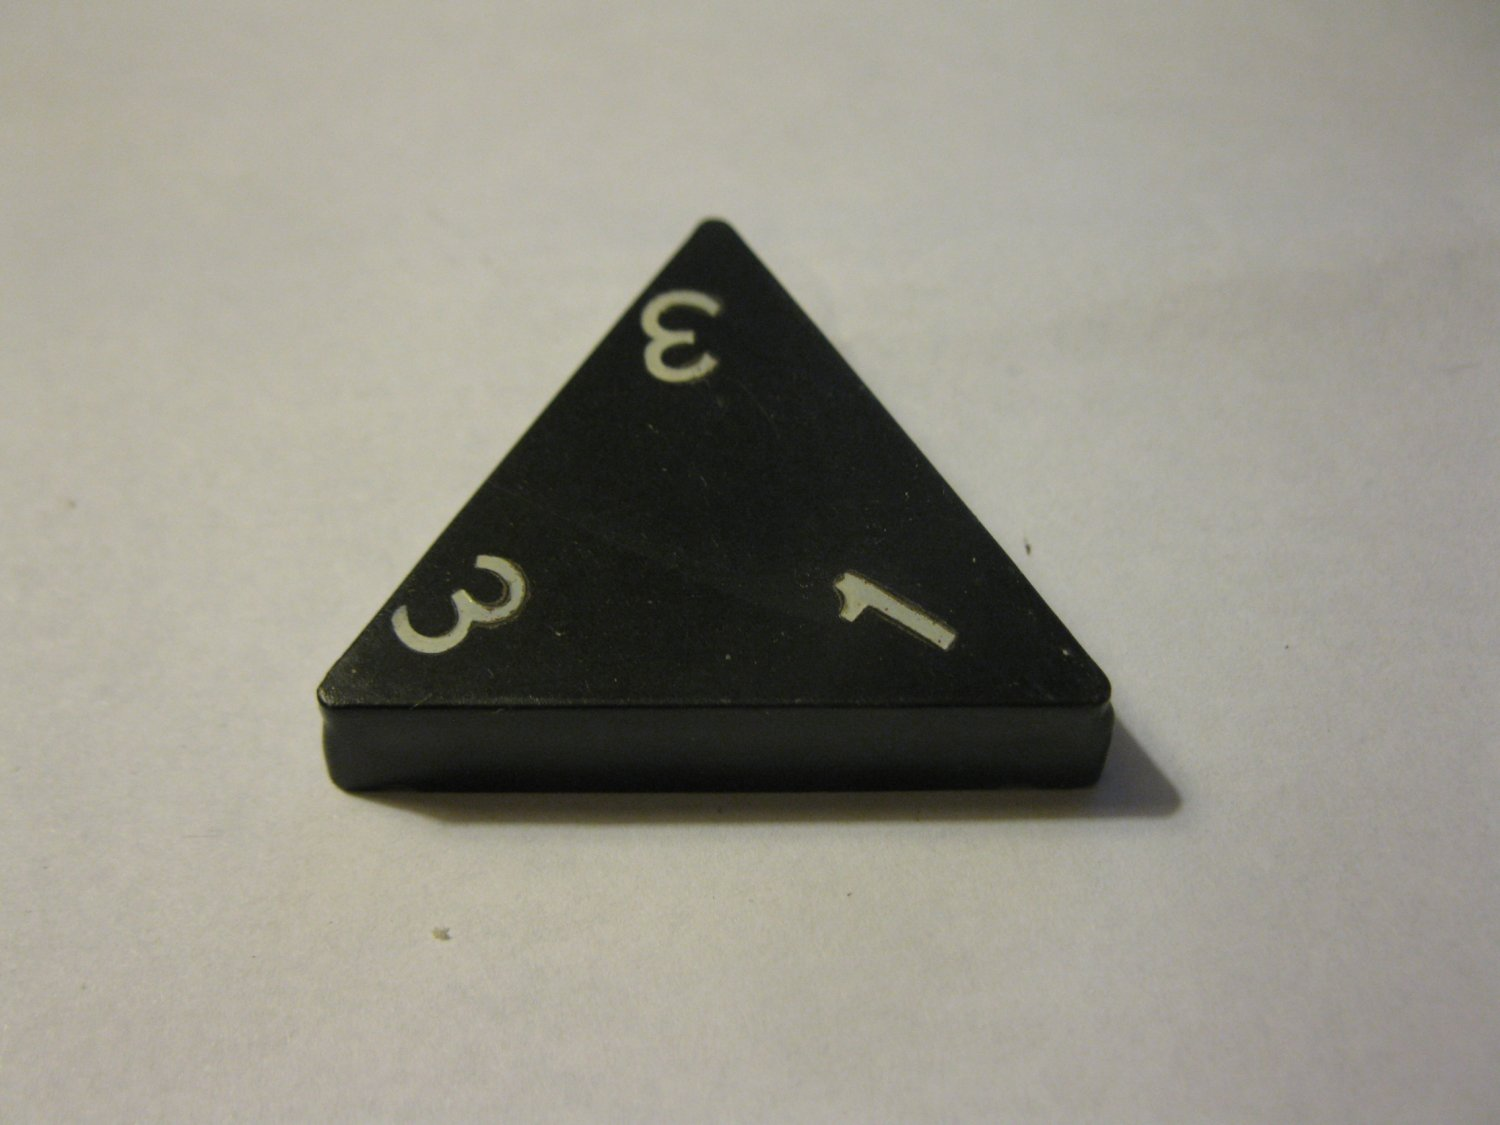 1985 Tri-ominoes Board Game Piece: Triangle # 1-3-3